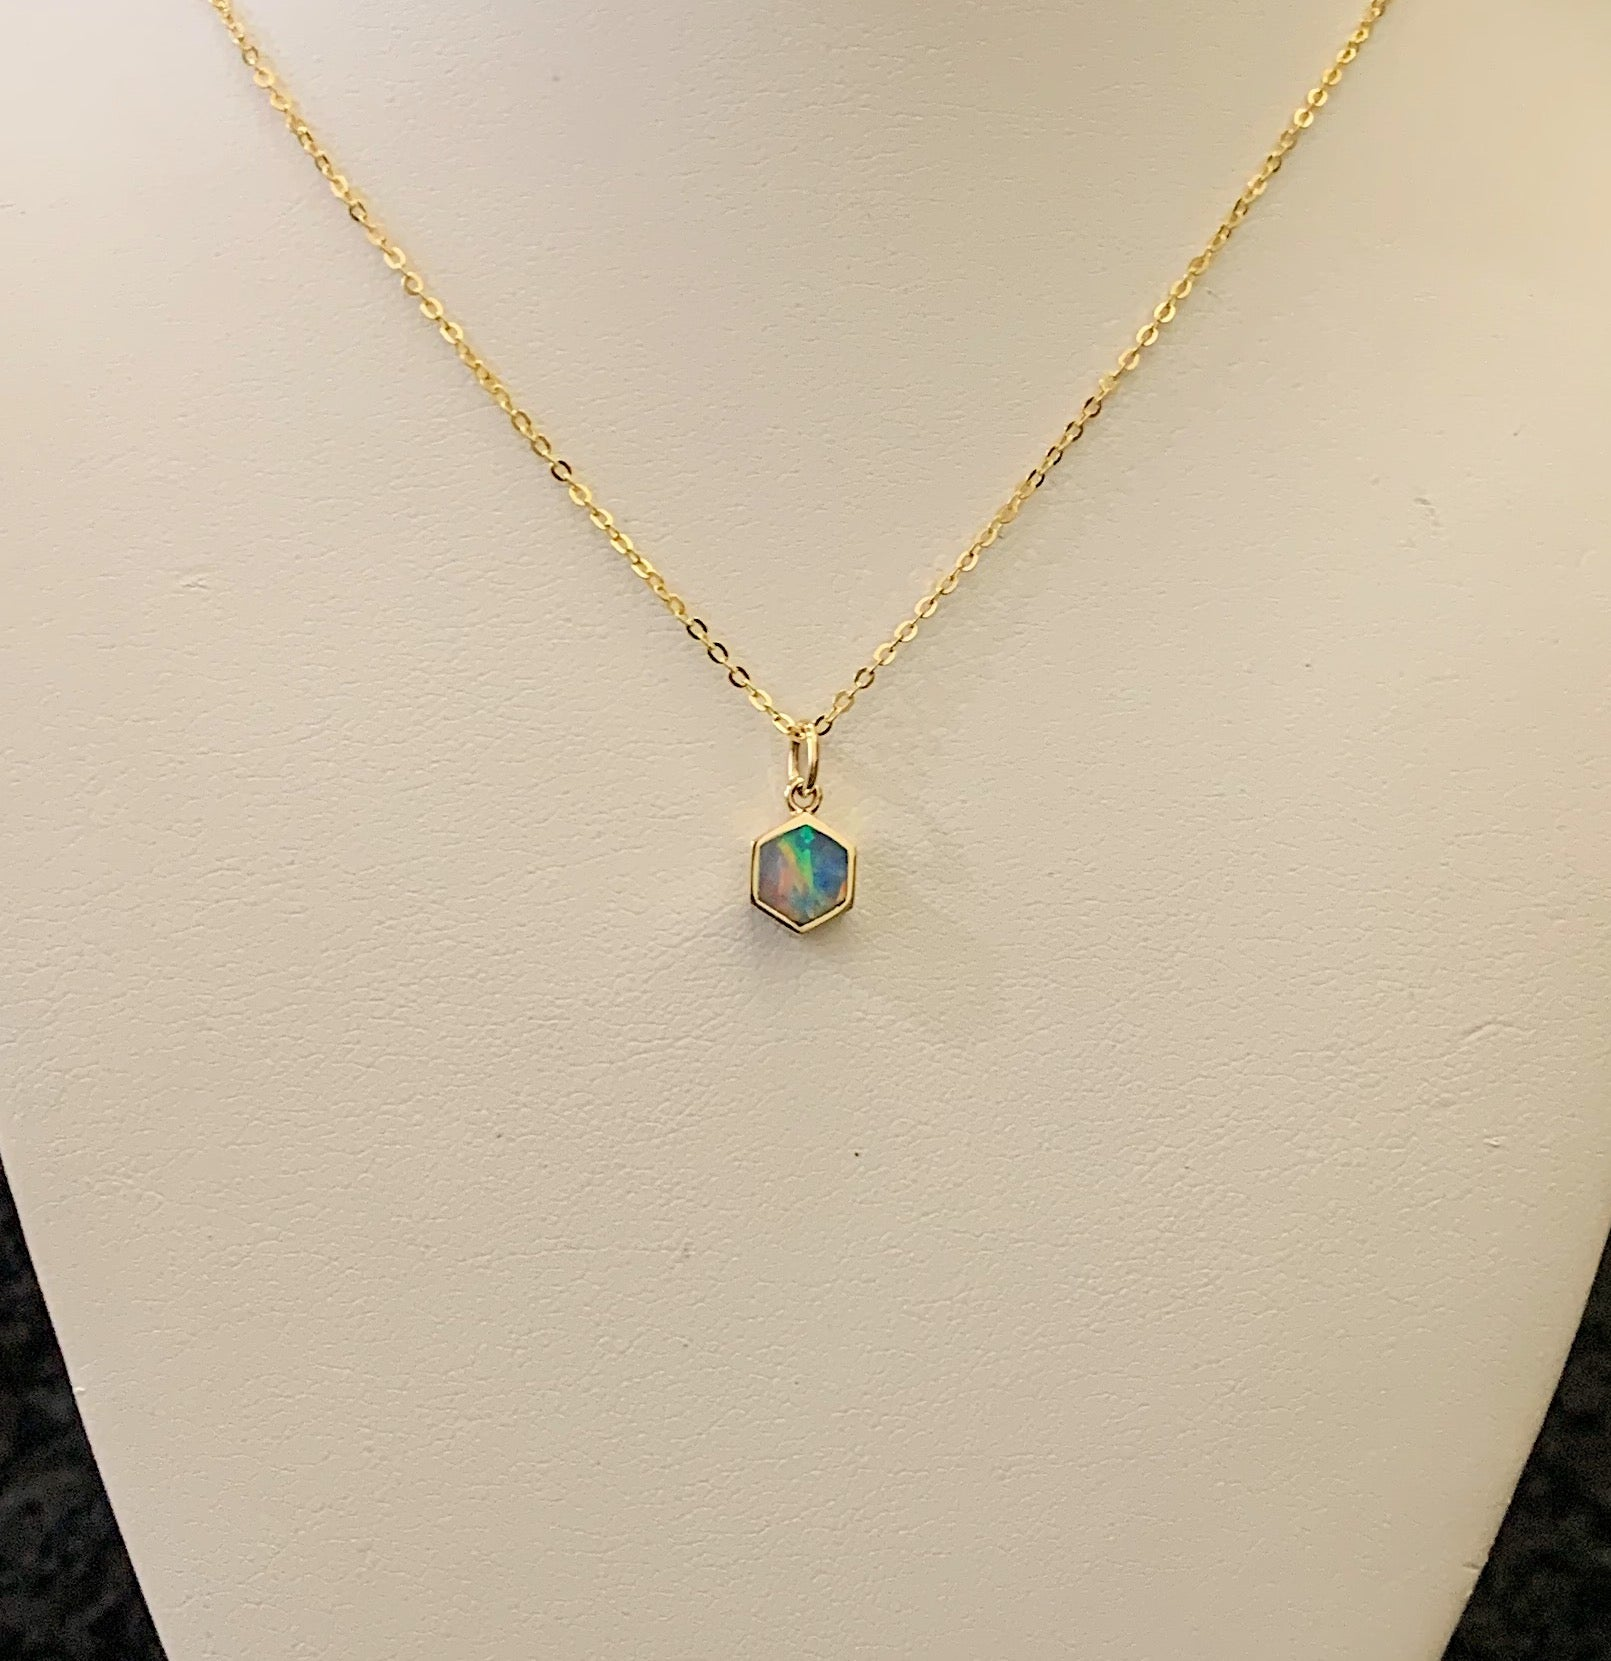 14k Yellow Gold Opal Doublet Petite Hexagon Pendant Necklace